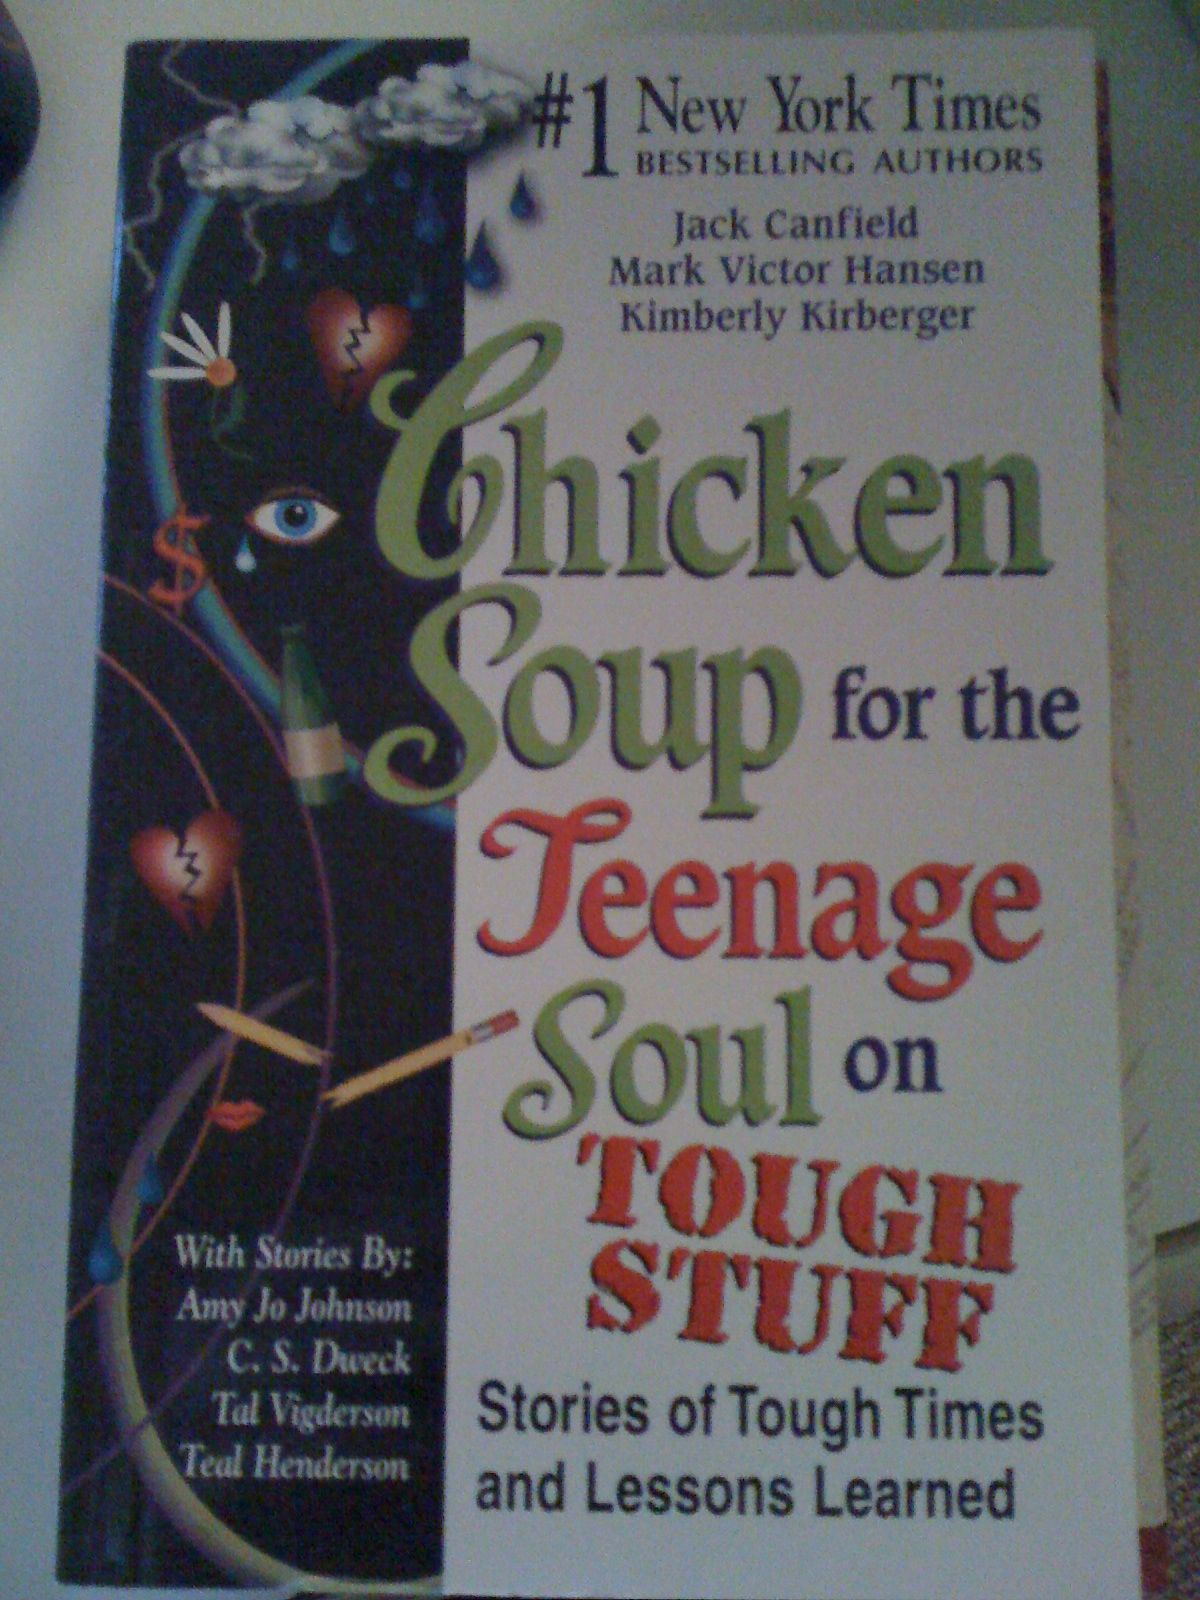 Chicken Soup for the Teenage Soul on Tough Stuff in mhenni's Garage Sale in York , PA for $5.00. Paperback Shipping only